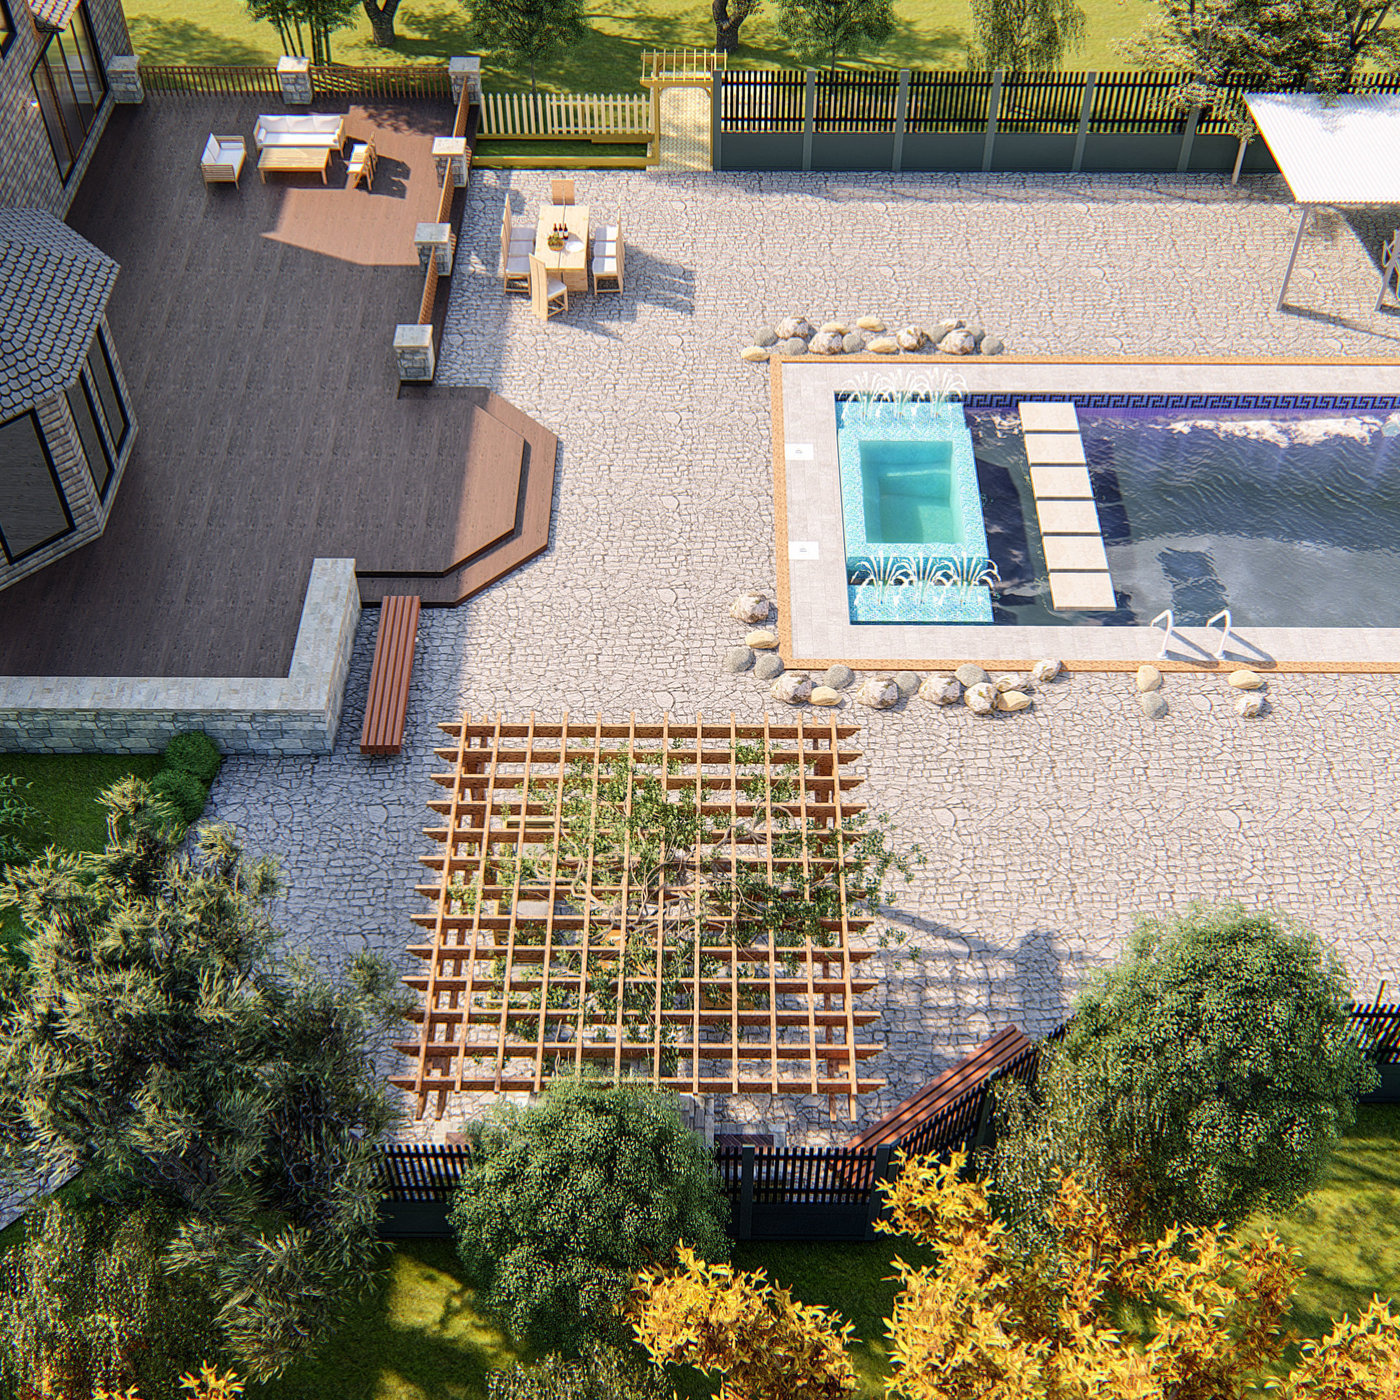 BACKYARD LANDSACPE WITH SWIMMING POOL DESIGN AND RENDER IN LUMION 8.5 PRO